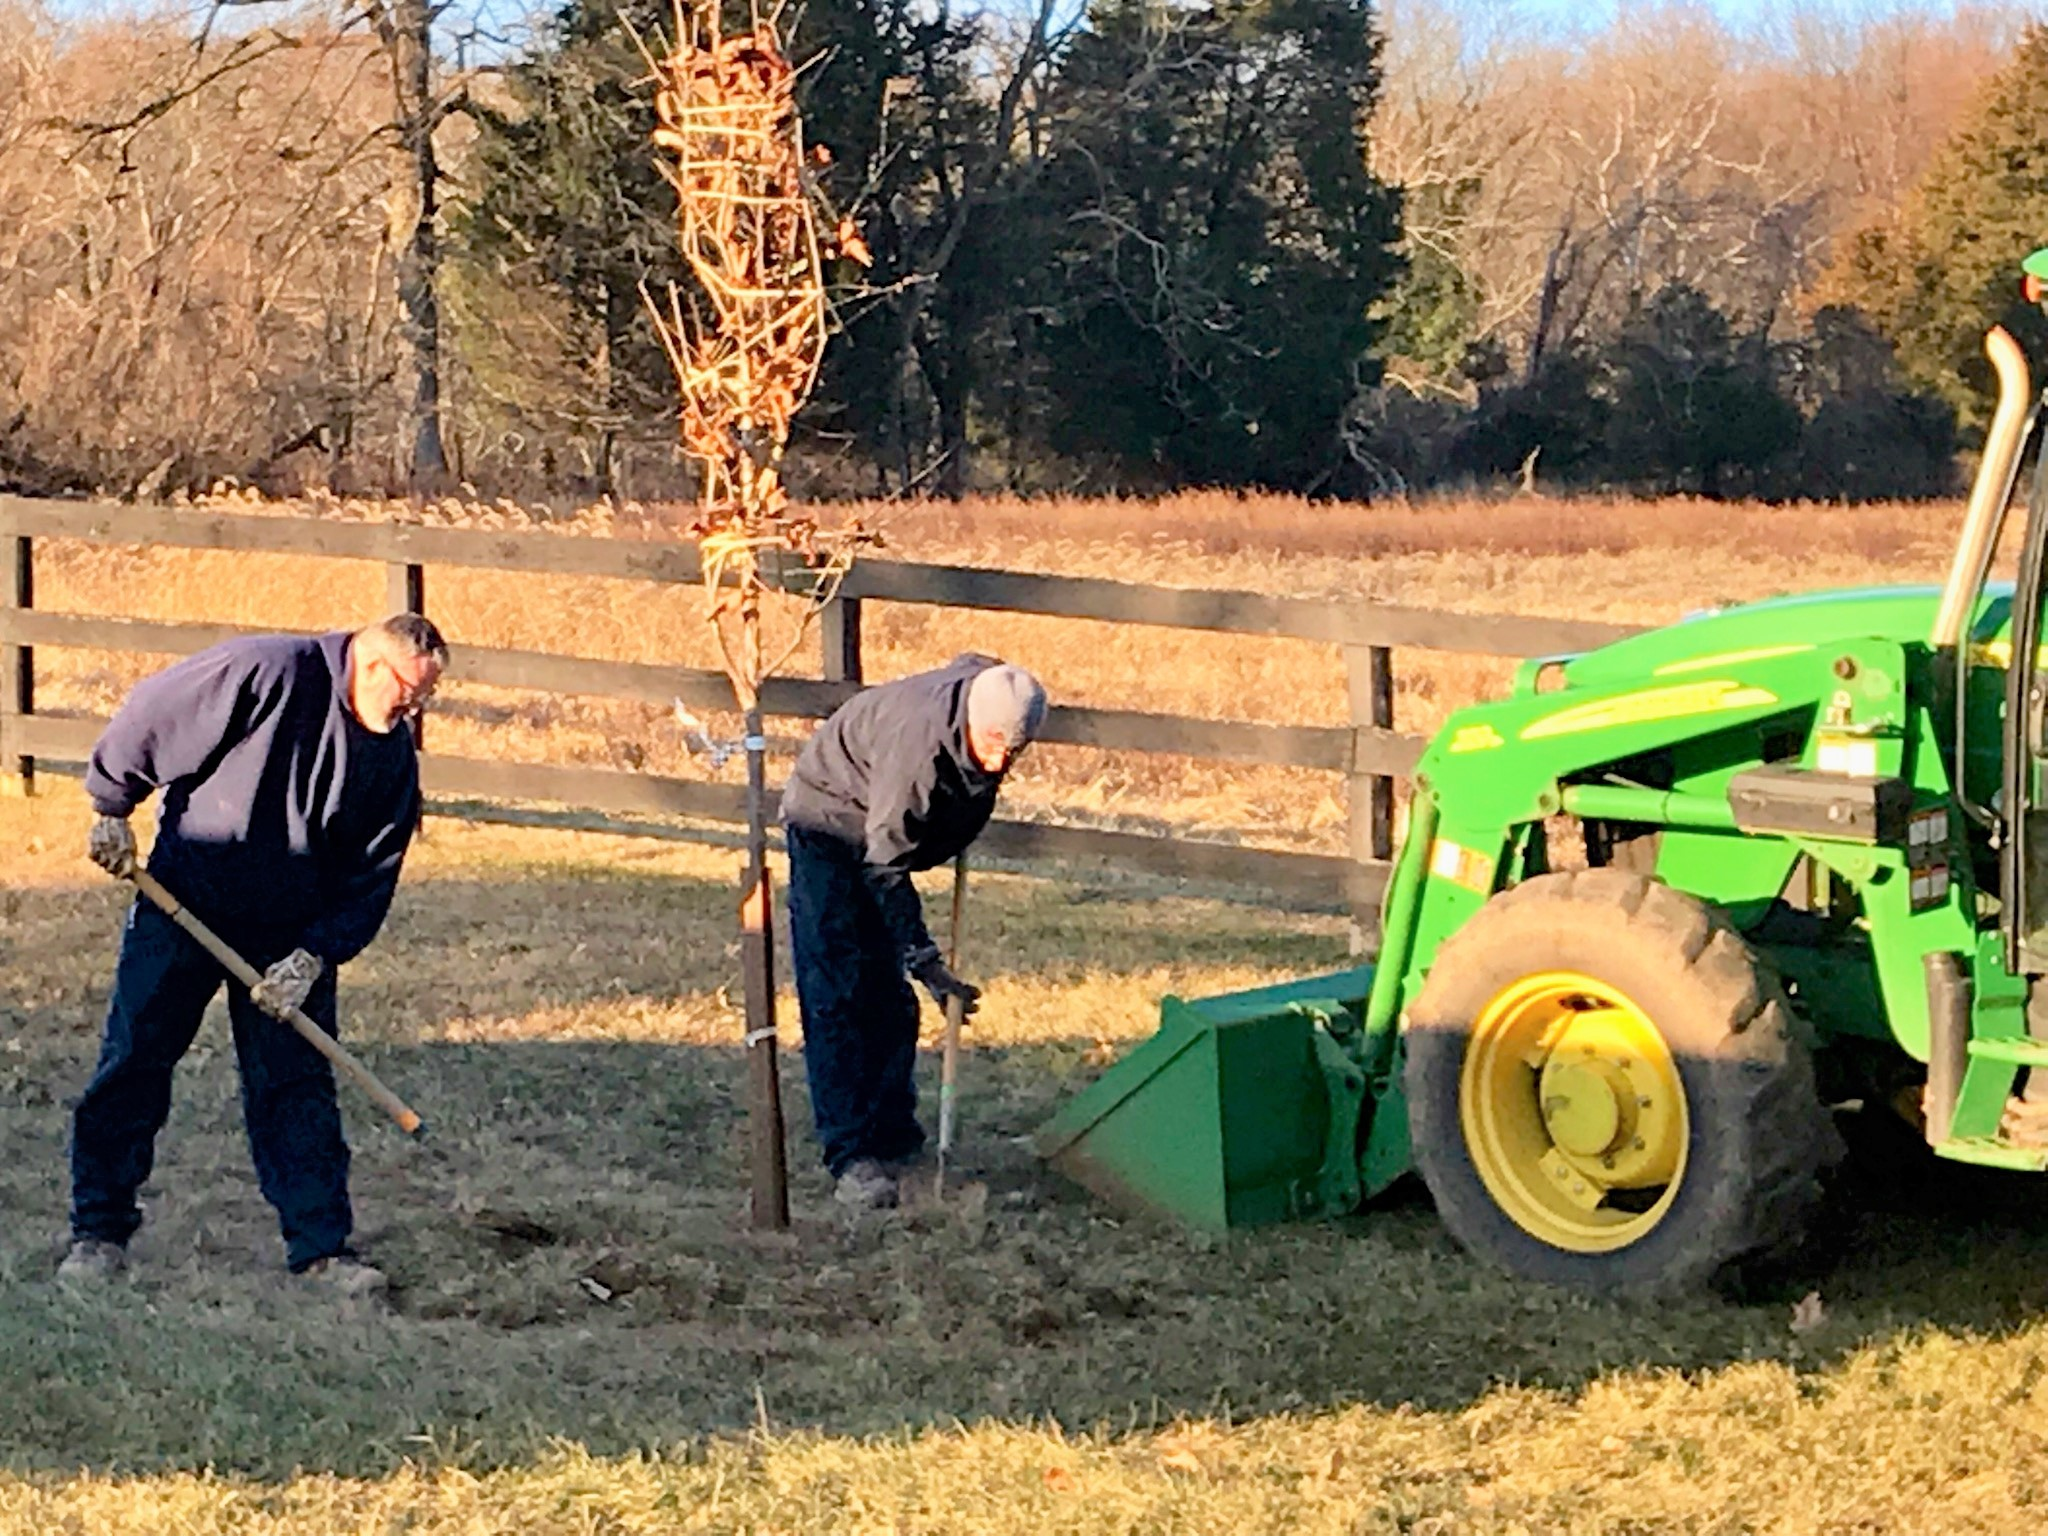 Your generous $250 gift helps cover the cost of new grounds maintenance equipment, such as leaf blowers, shovels, rakes, etc.